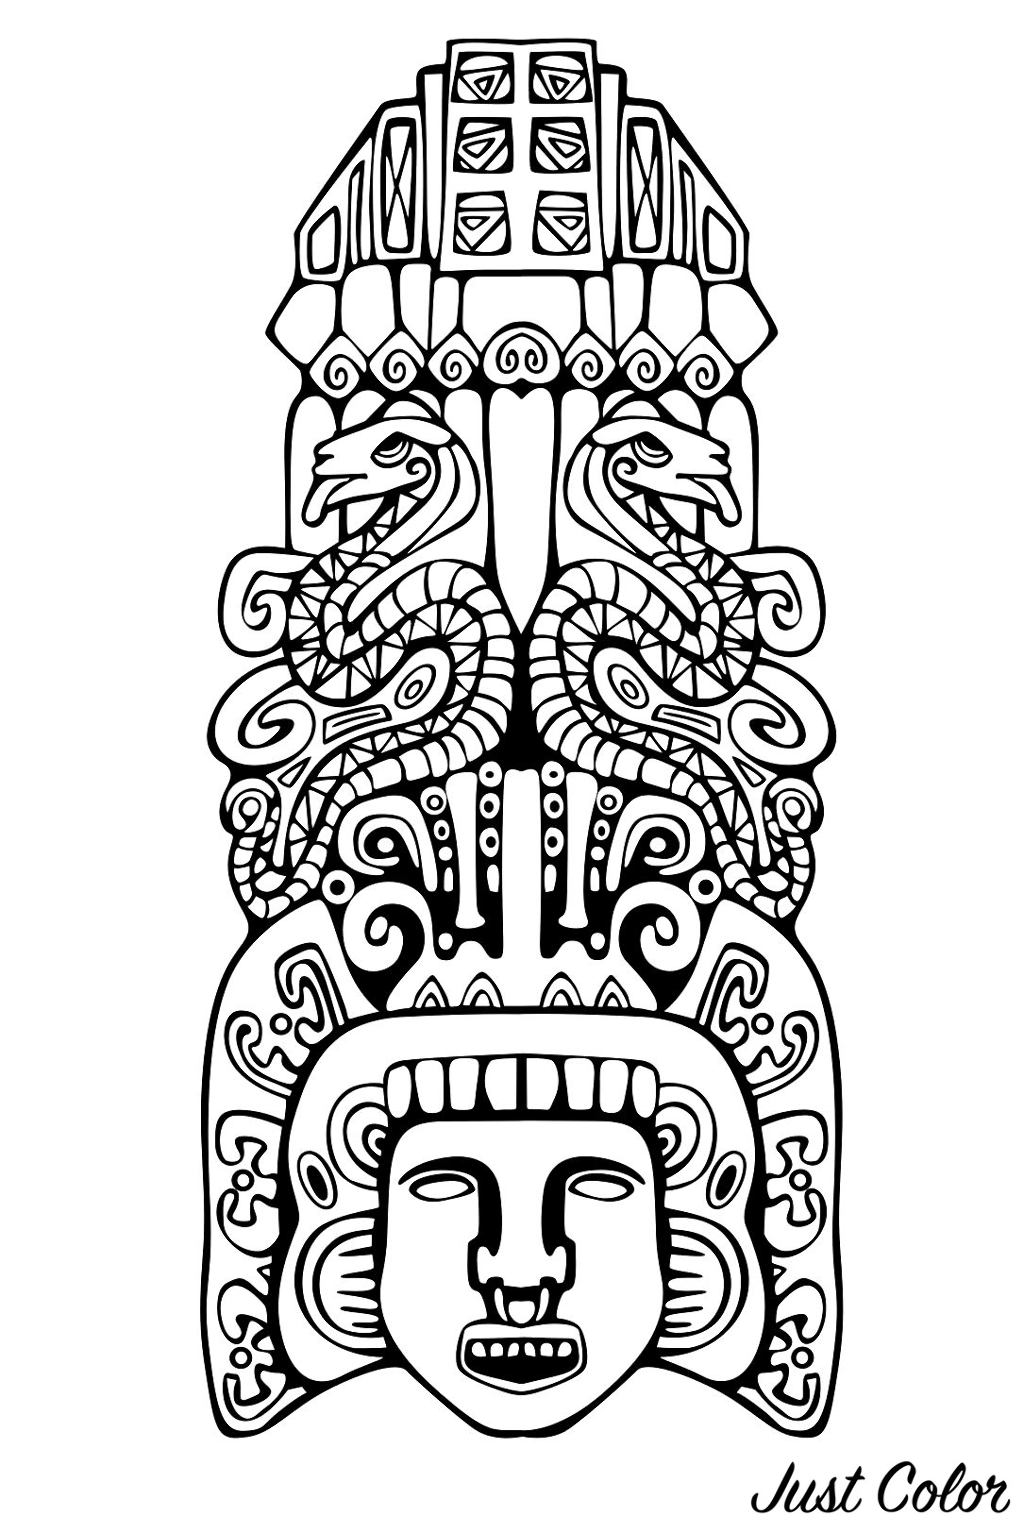 Totem inspired by Aztecs, Mayans and Incas - 2